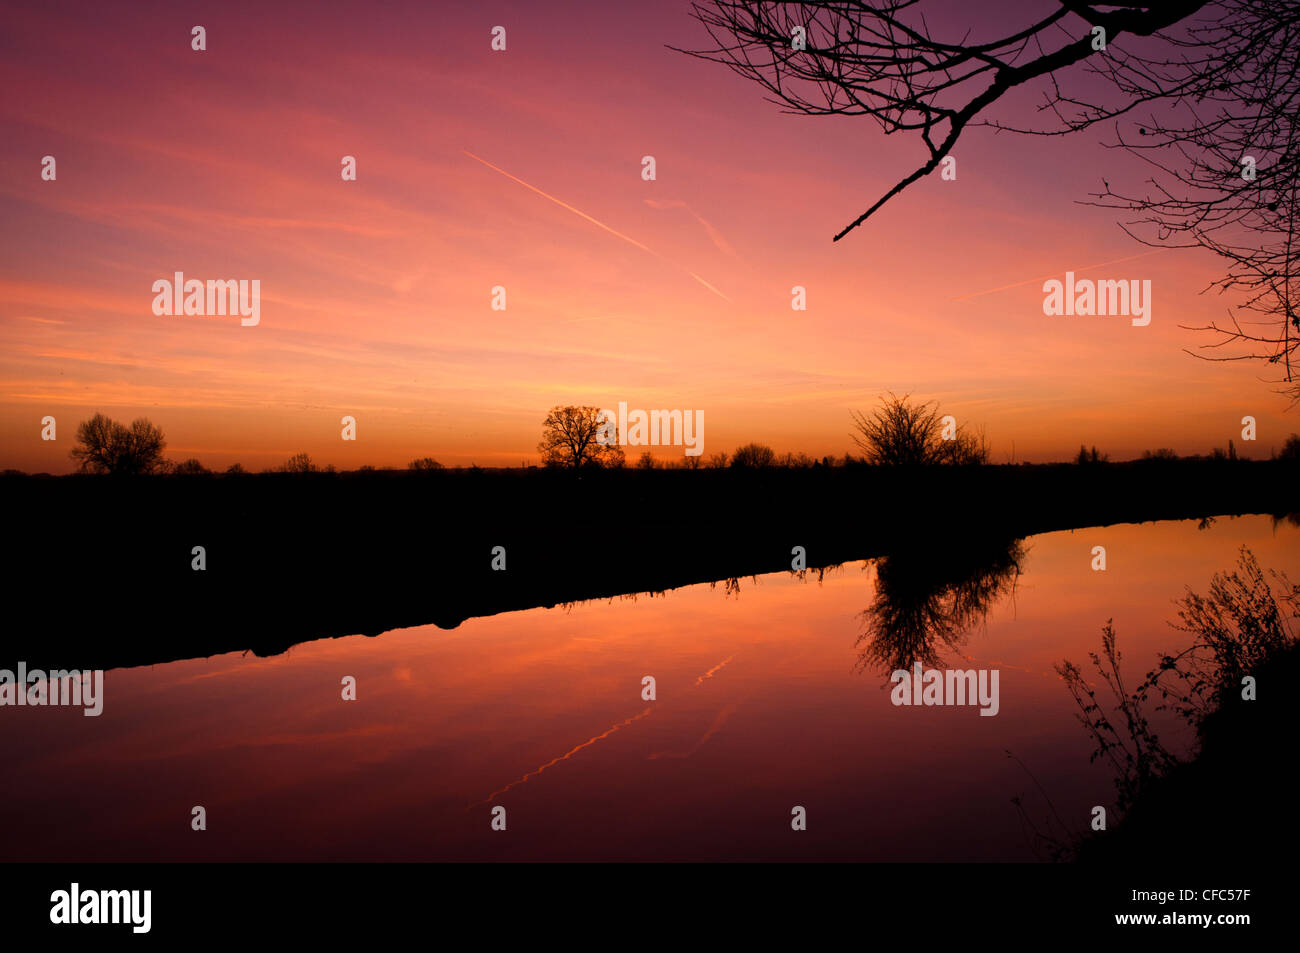 Dawn on the Grand Union Canal in Cosgrove, Northamptonshire - Stock Image